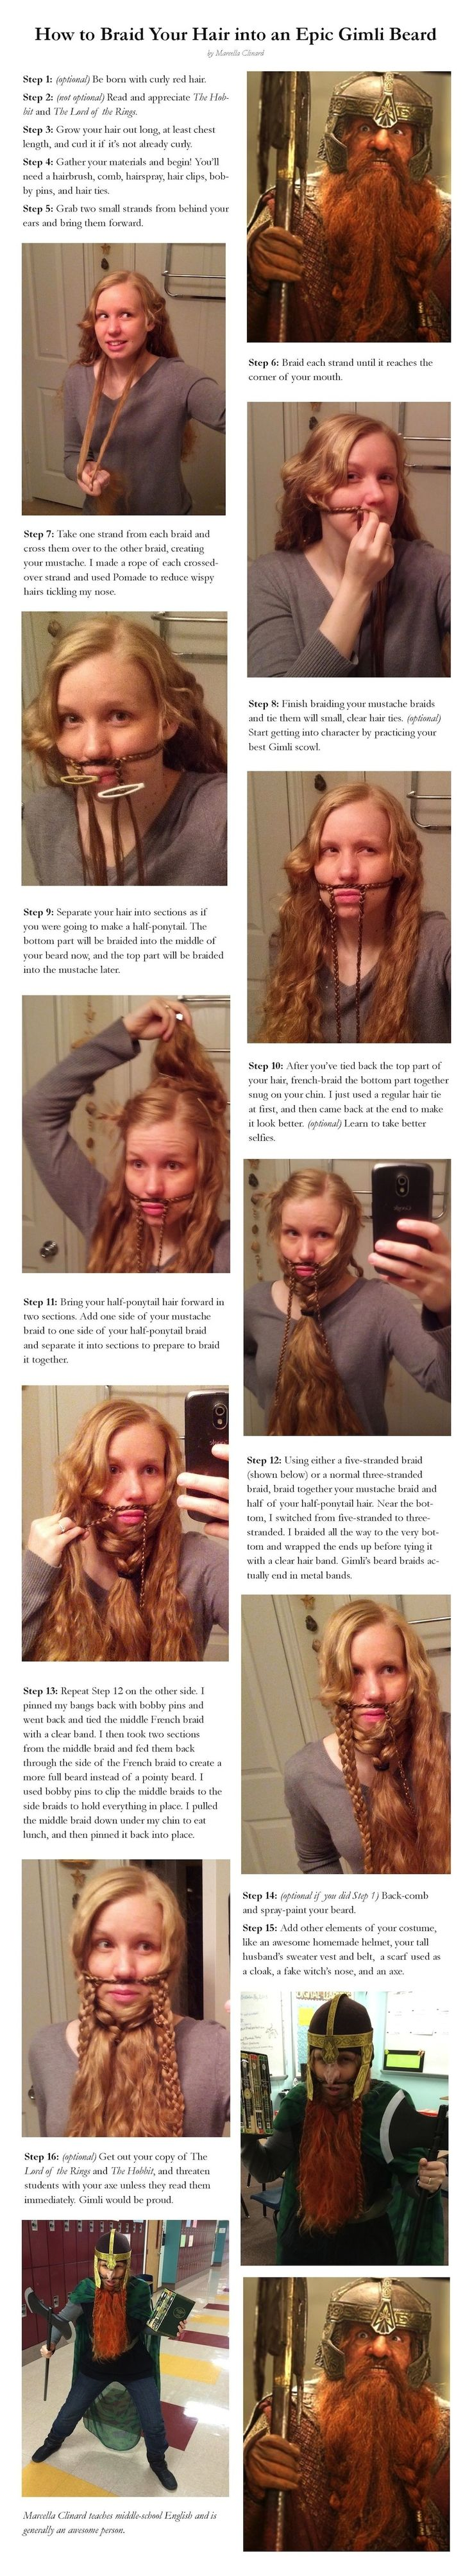 This Is How To Braid Your Hair Into A Gimli Beard-- This is awesome. @lonir Your hair color and length and texture would be perfect. :)